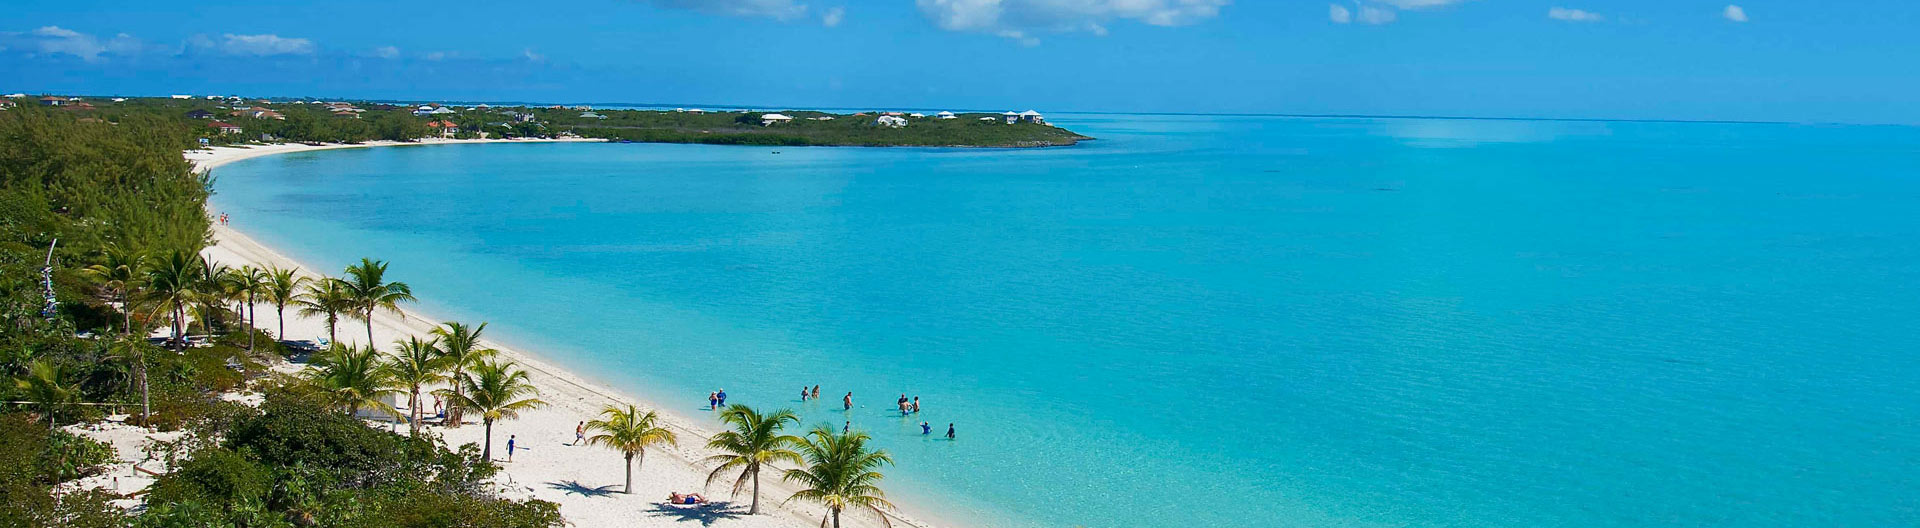 15 beach Condos for sales on Long Bay - Turks and Caicos Contact Us